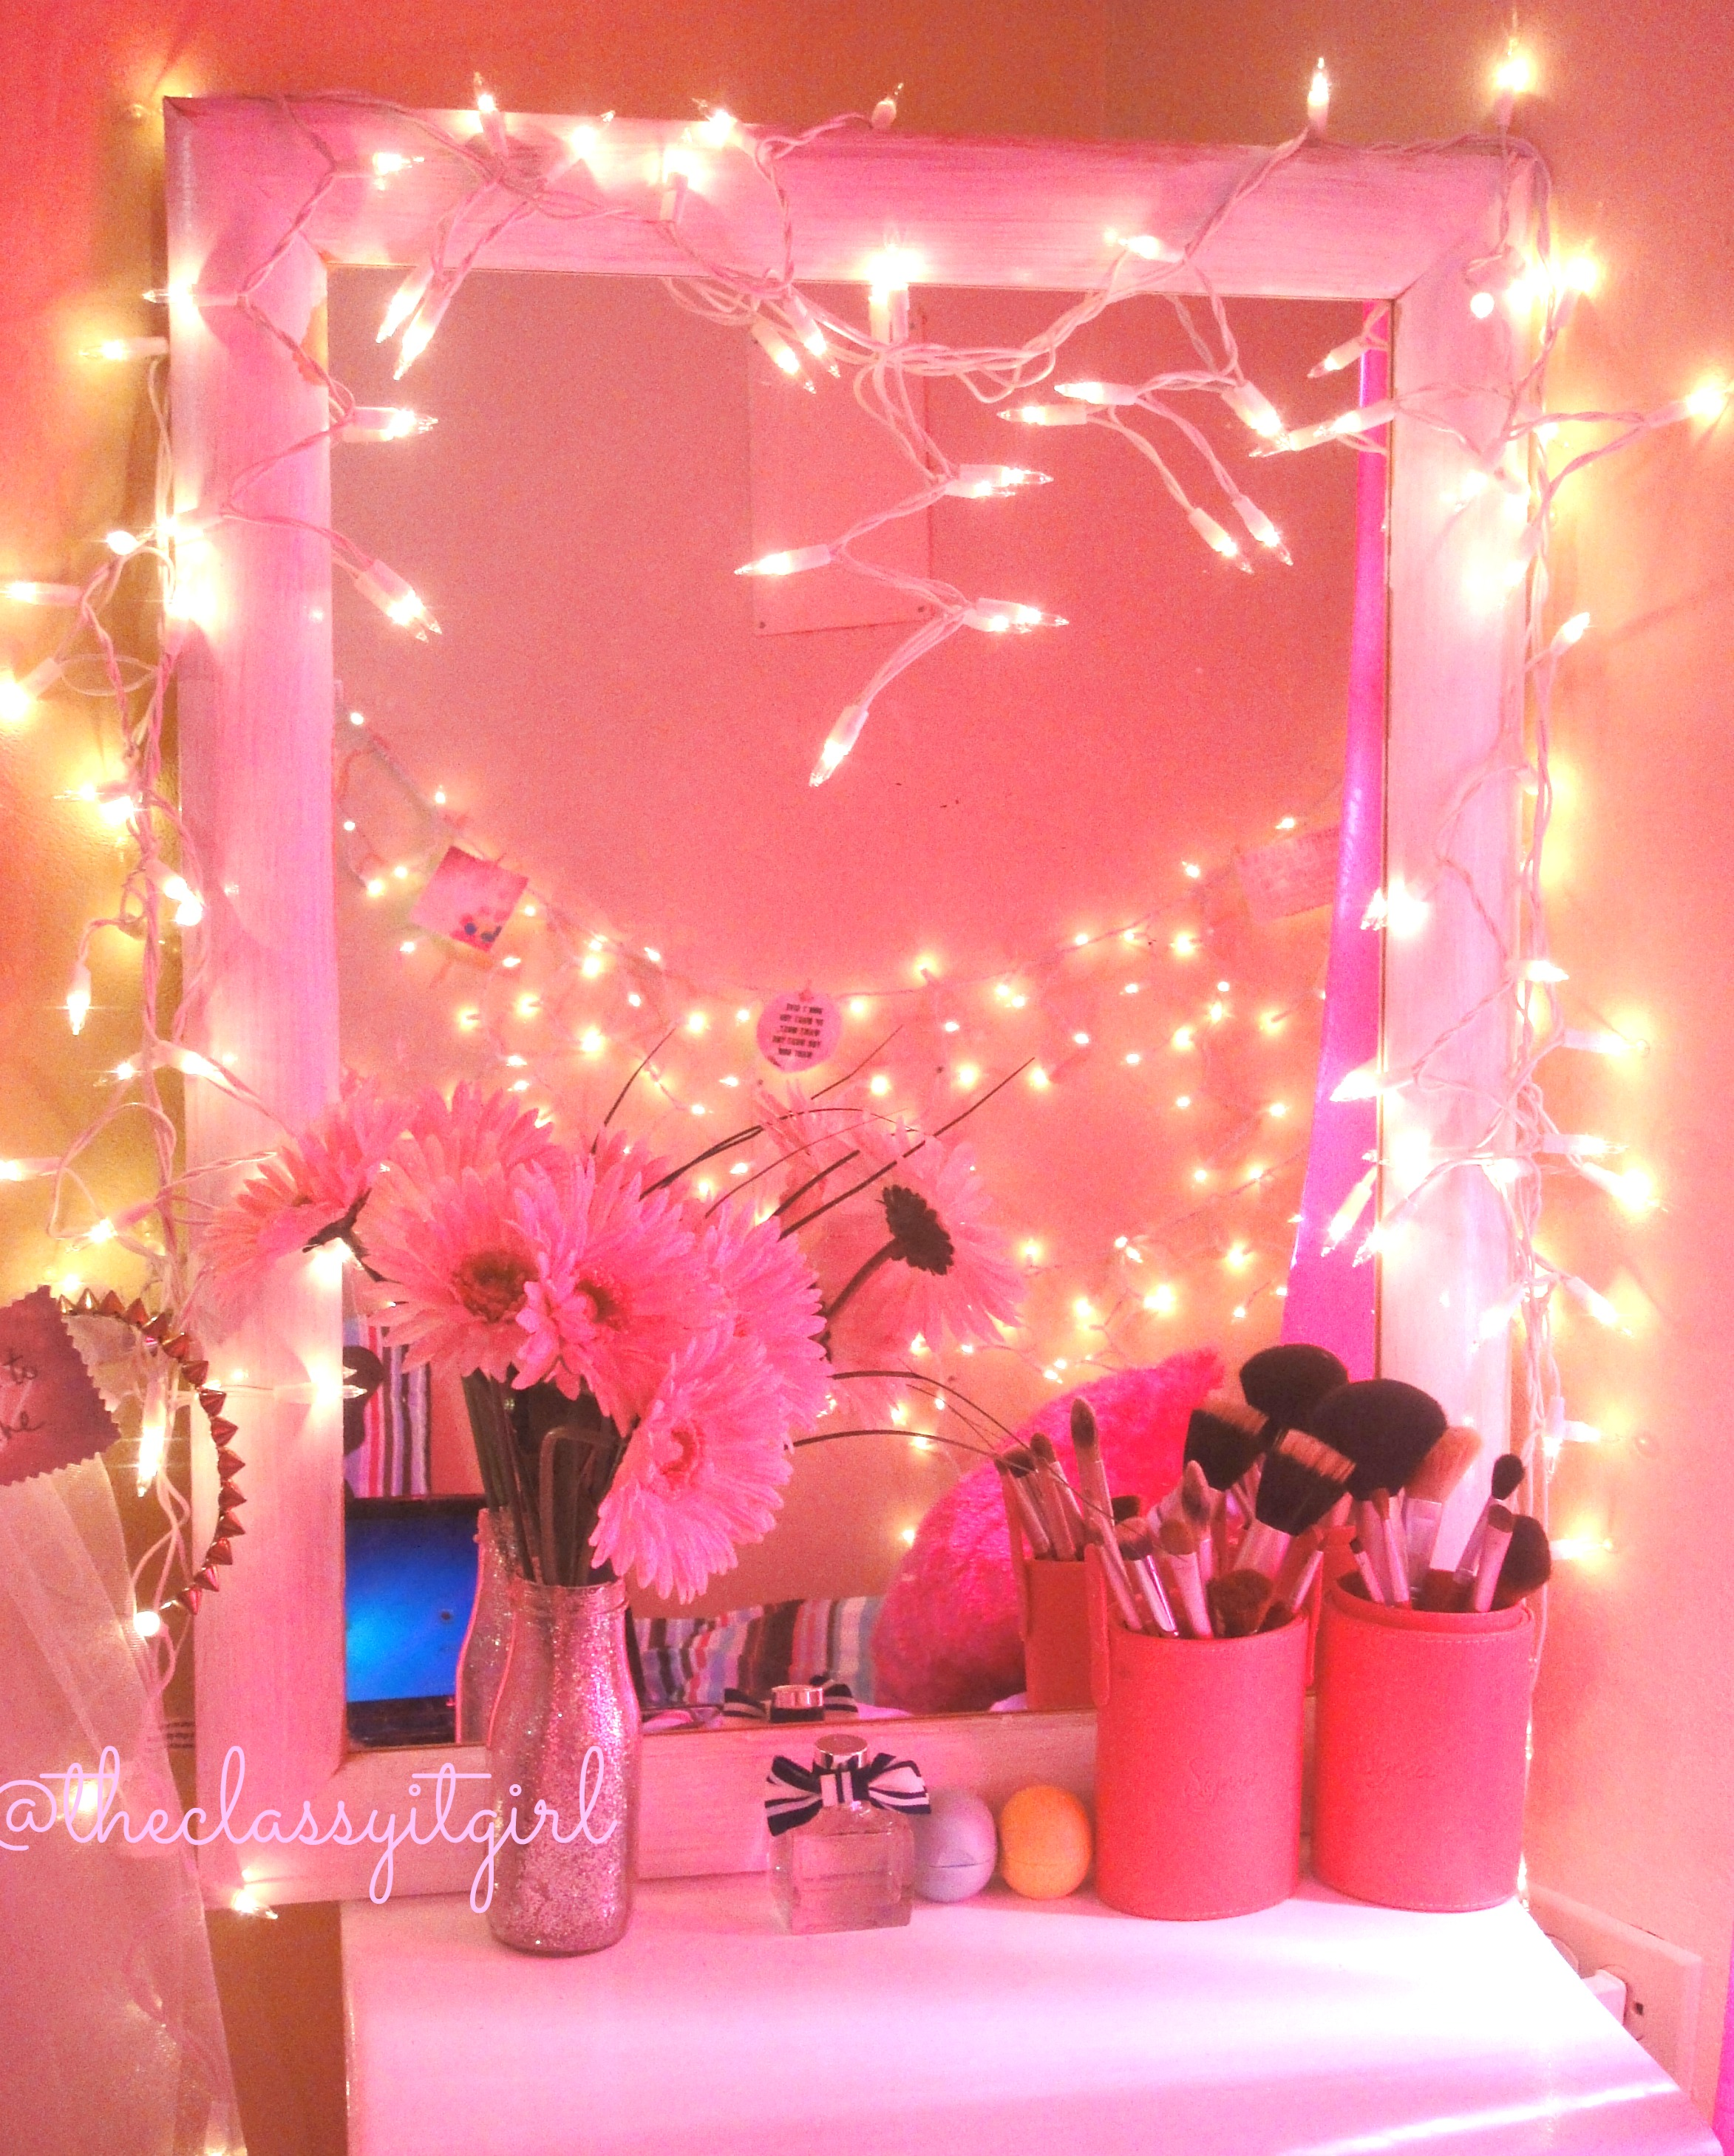 Dormspiration diy room d cor the classy it girl for Room decor stuff